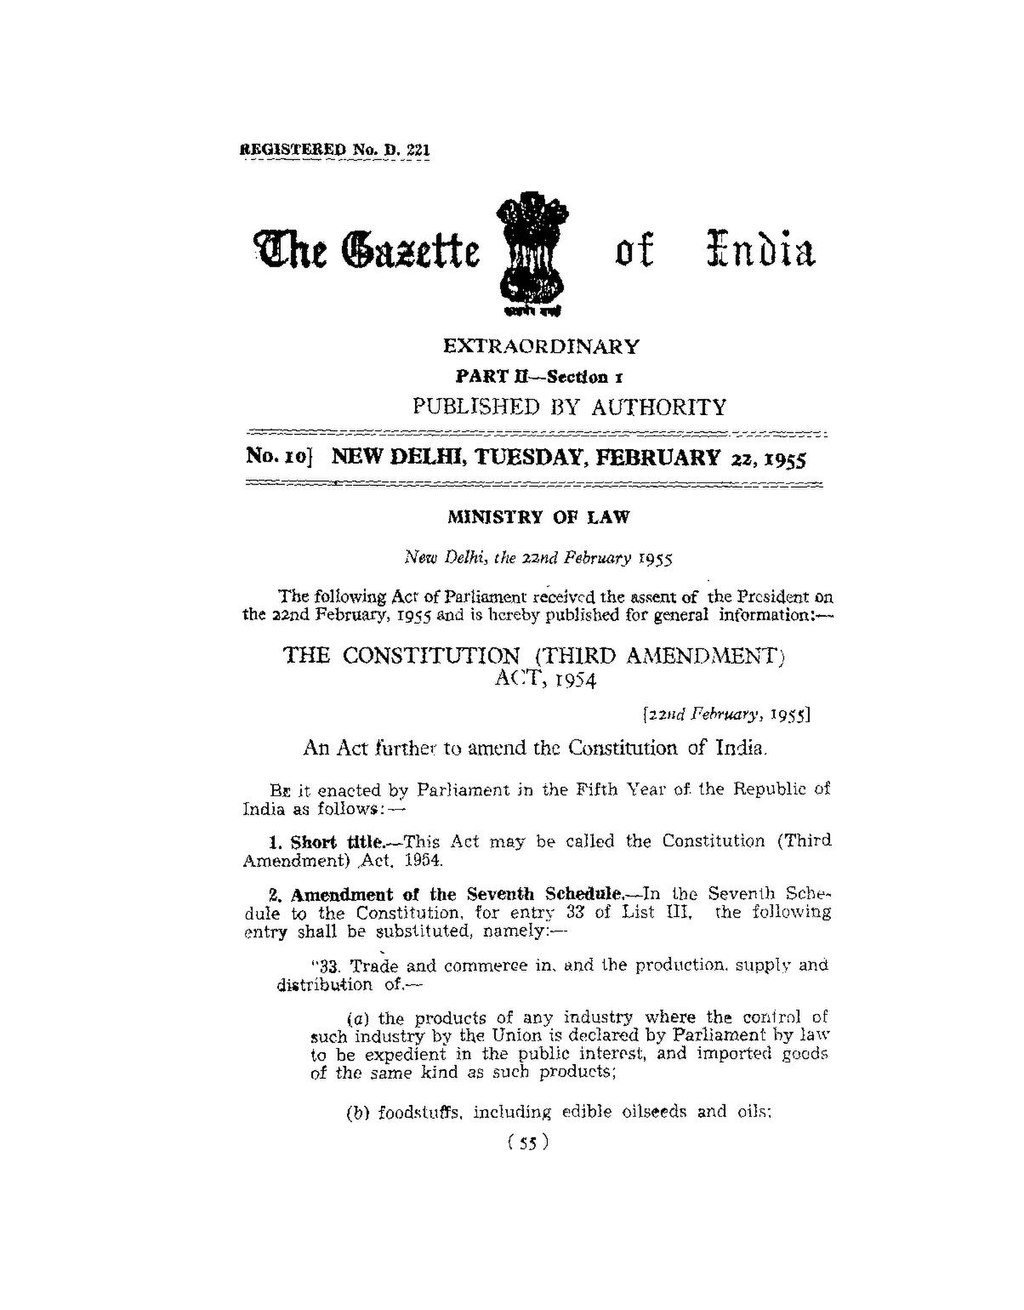 page:the constitution of india (3rd amendment) act 1954.pdf/1